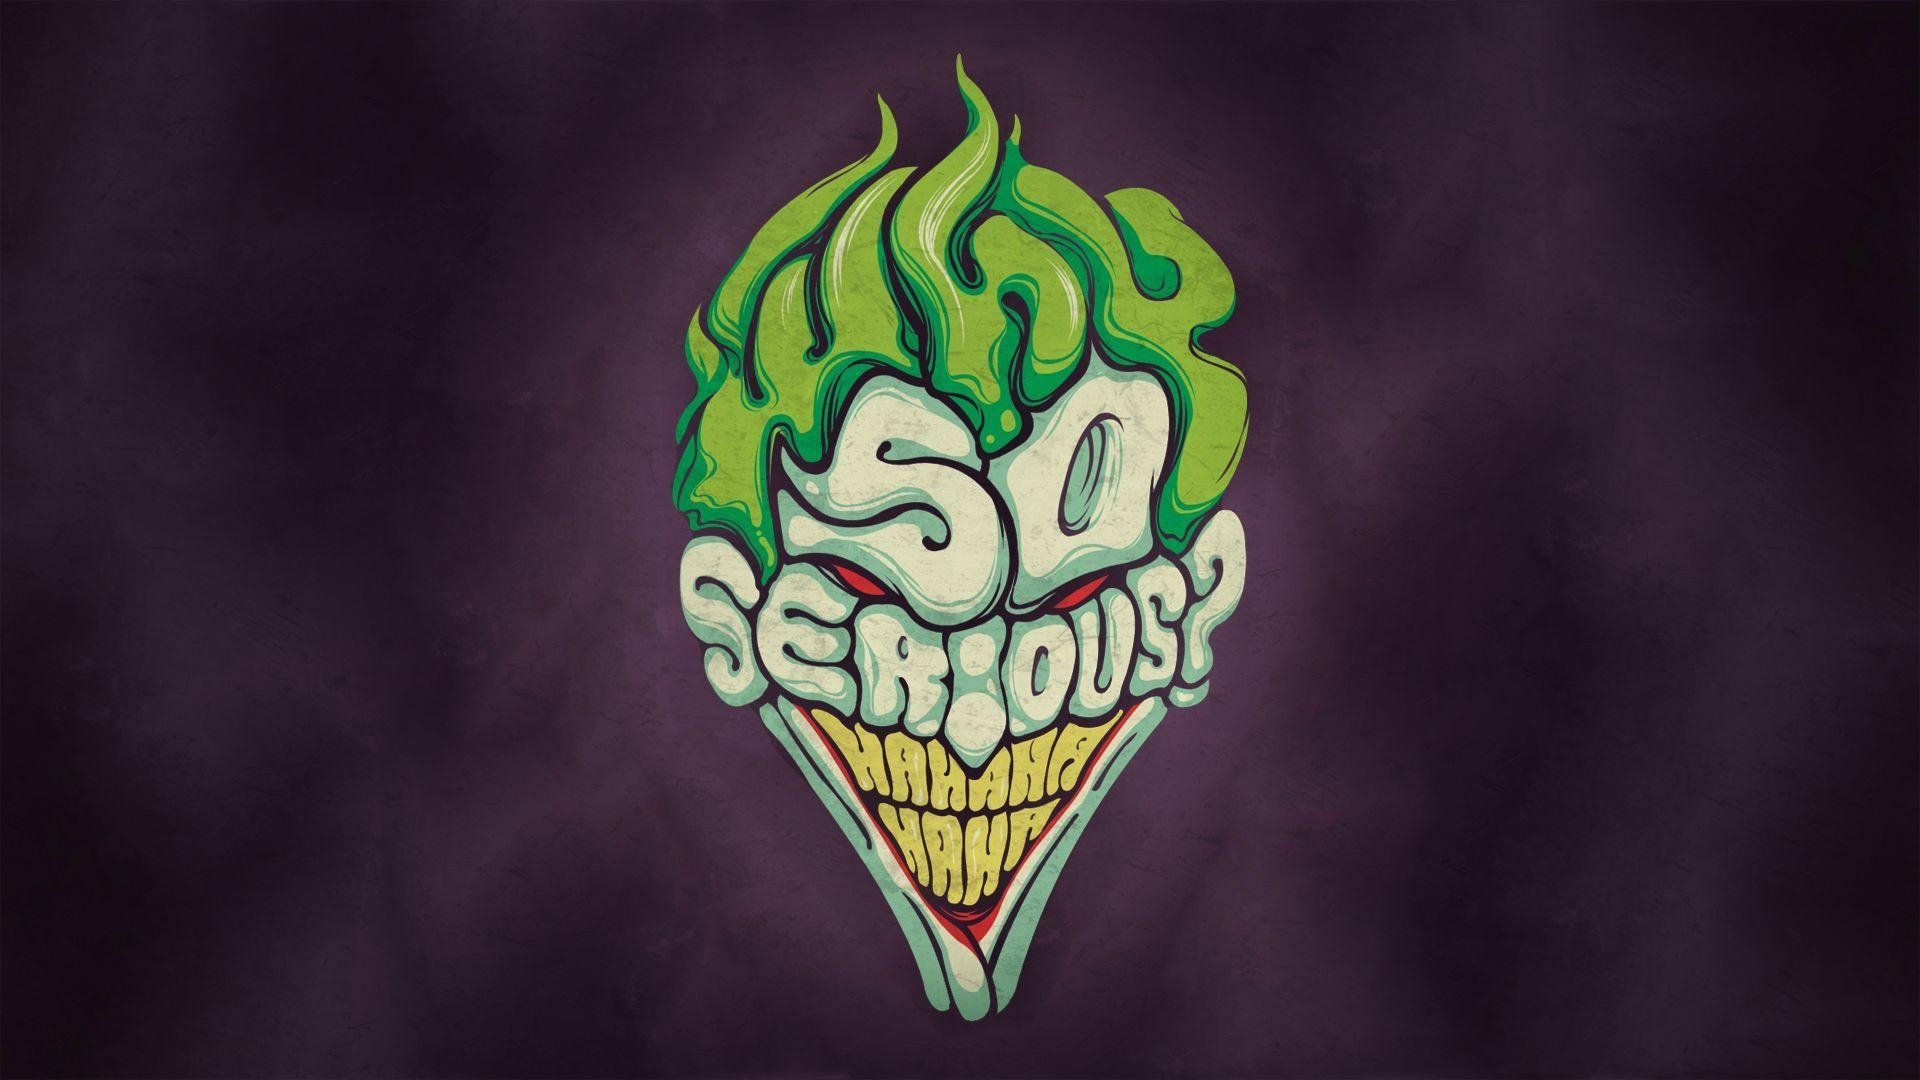 l'œuvre d'art joker why so serious? hd papier peint de bureau: écran